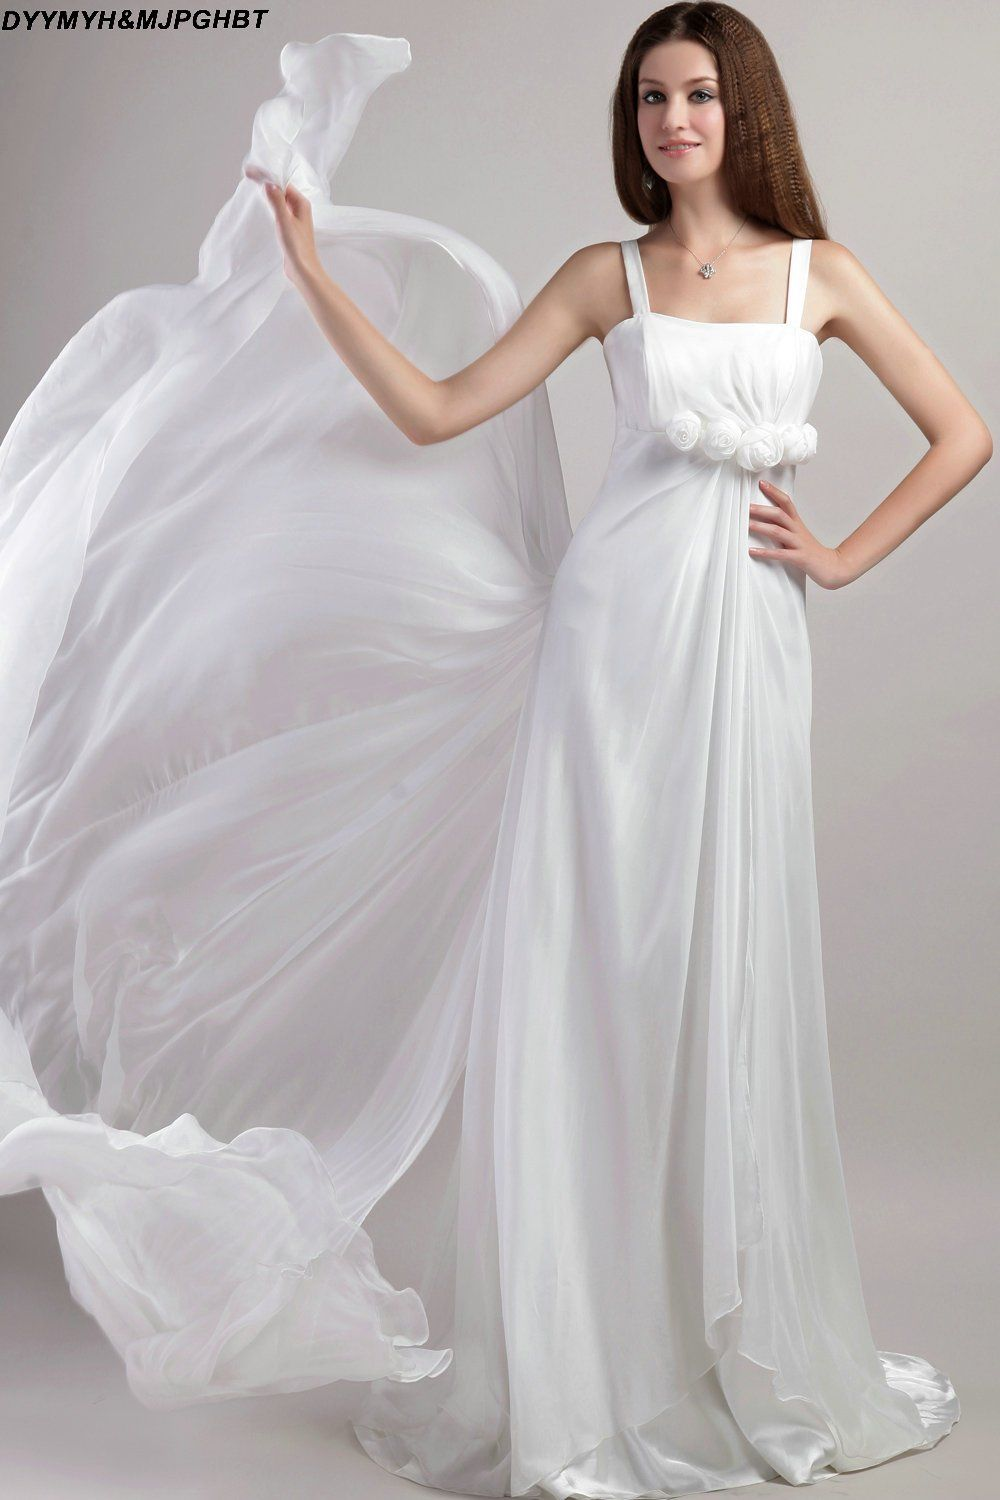 Simple white wedding dresses  Glamours Papilio Summer Beach Wedding Dresses Spaghetti Strap Simple